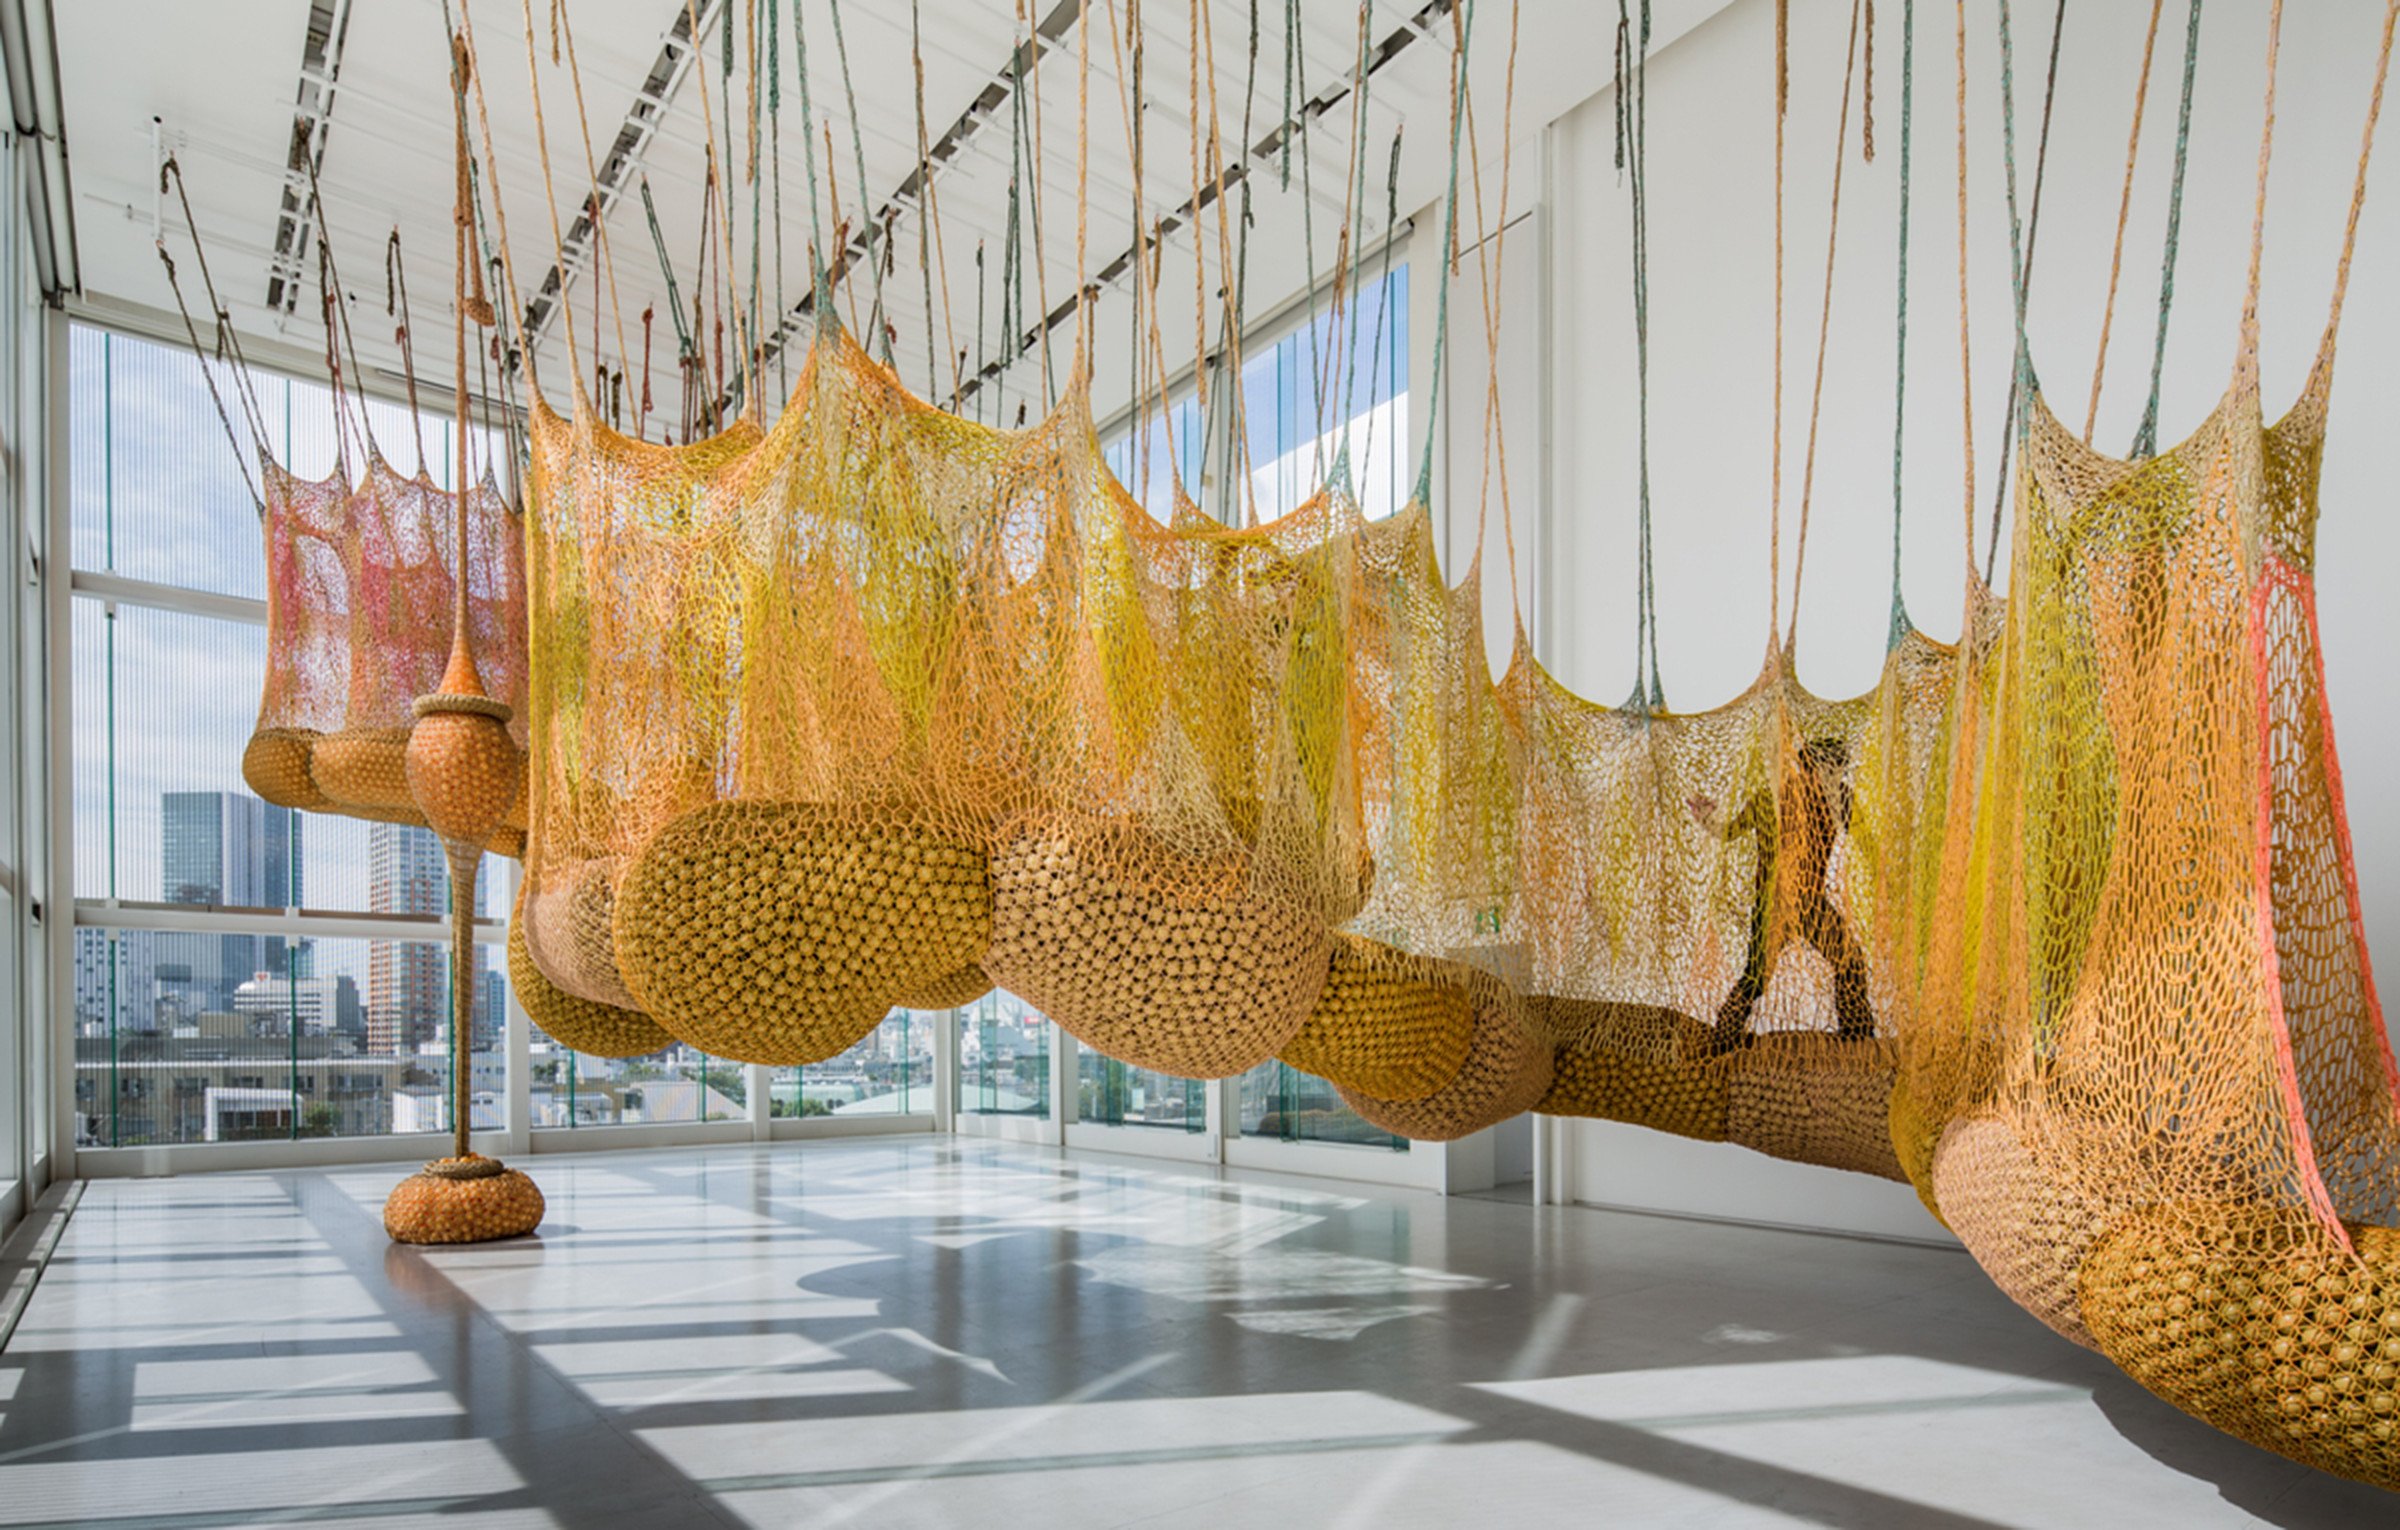 <span class=&#34;link fancybox-details-link&#34;><a href=&#34;/artists/37-ernesto-neto/works/15108/&#34;>View Detail Page</a></span><div class=&#34;artist&#34;><strong>ERNESTO NETO</strong></div> <div class=&#34;title&#34;><em>Life is a Body we are Part of</em>, 2012</div> <div class=&#34;medium&#34;>polypropylene + polyester string and plastic balls</div> <div class=&#34;dimensions&#34;>780 x 786 x 1486 cm</div>